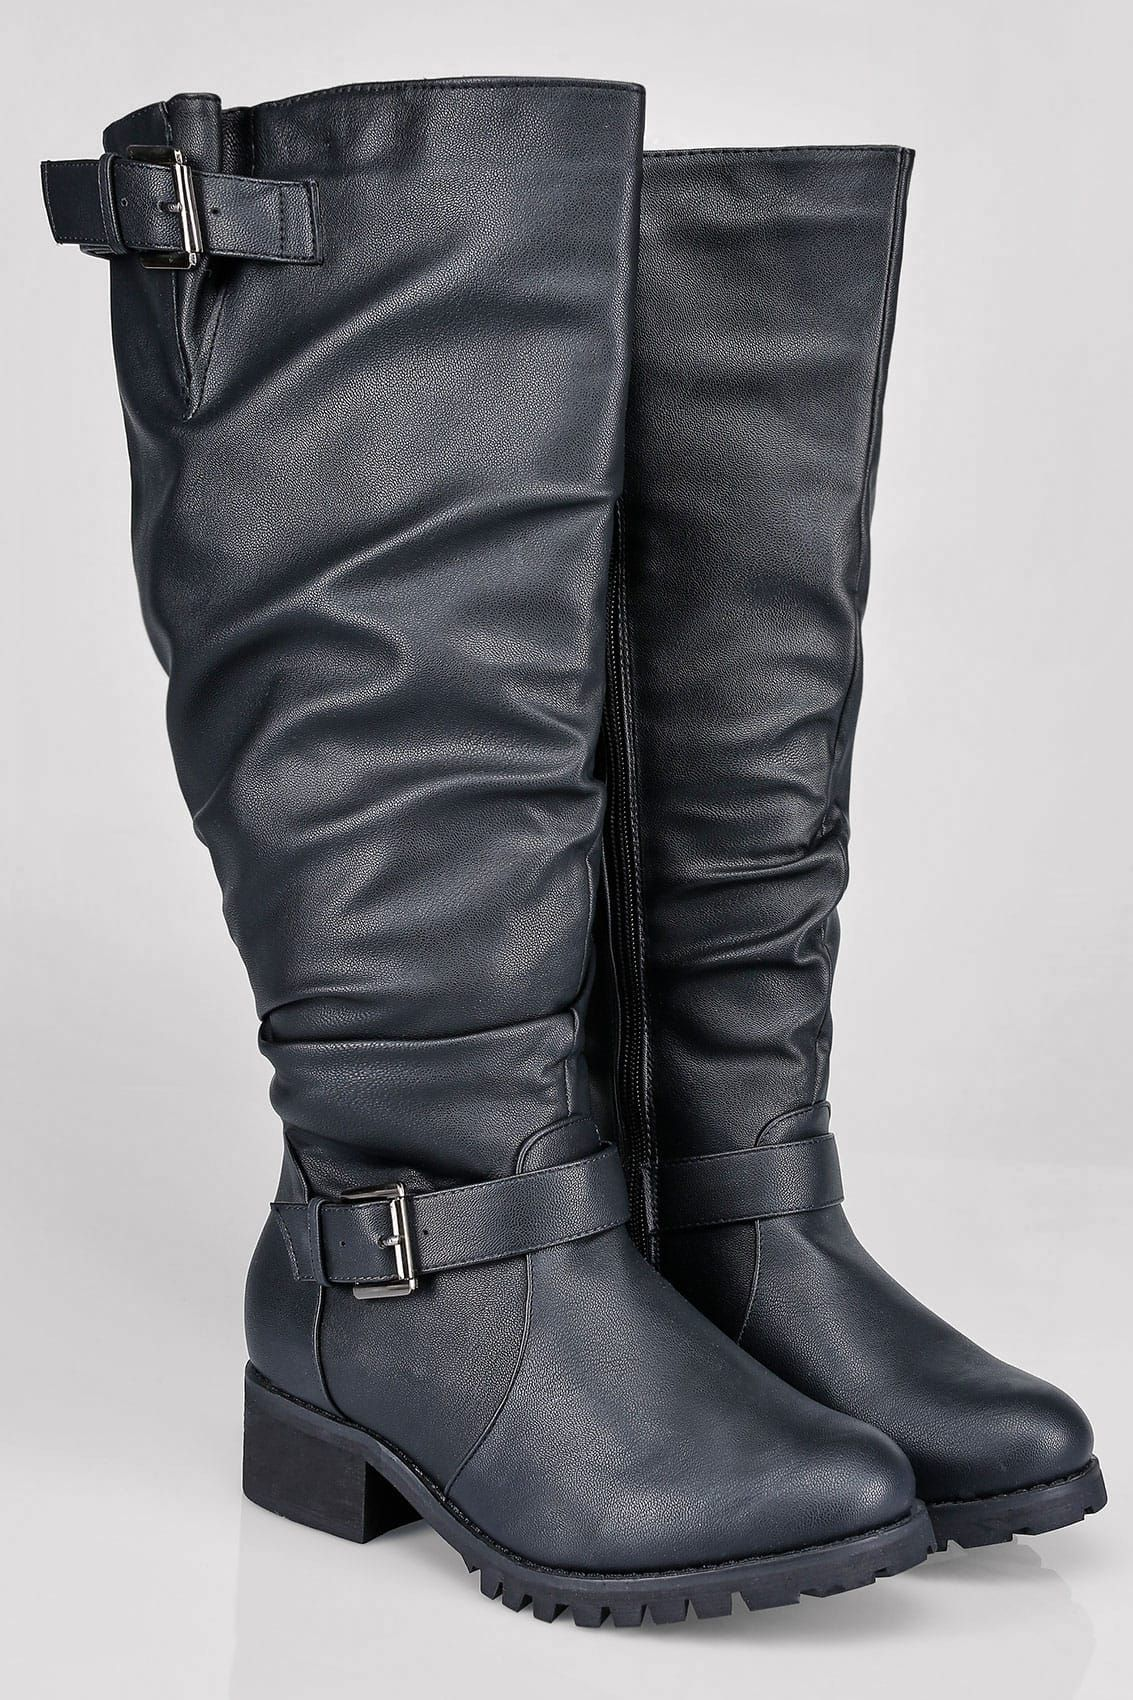 Boots, Wide fit knee high boots, Knee high